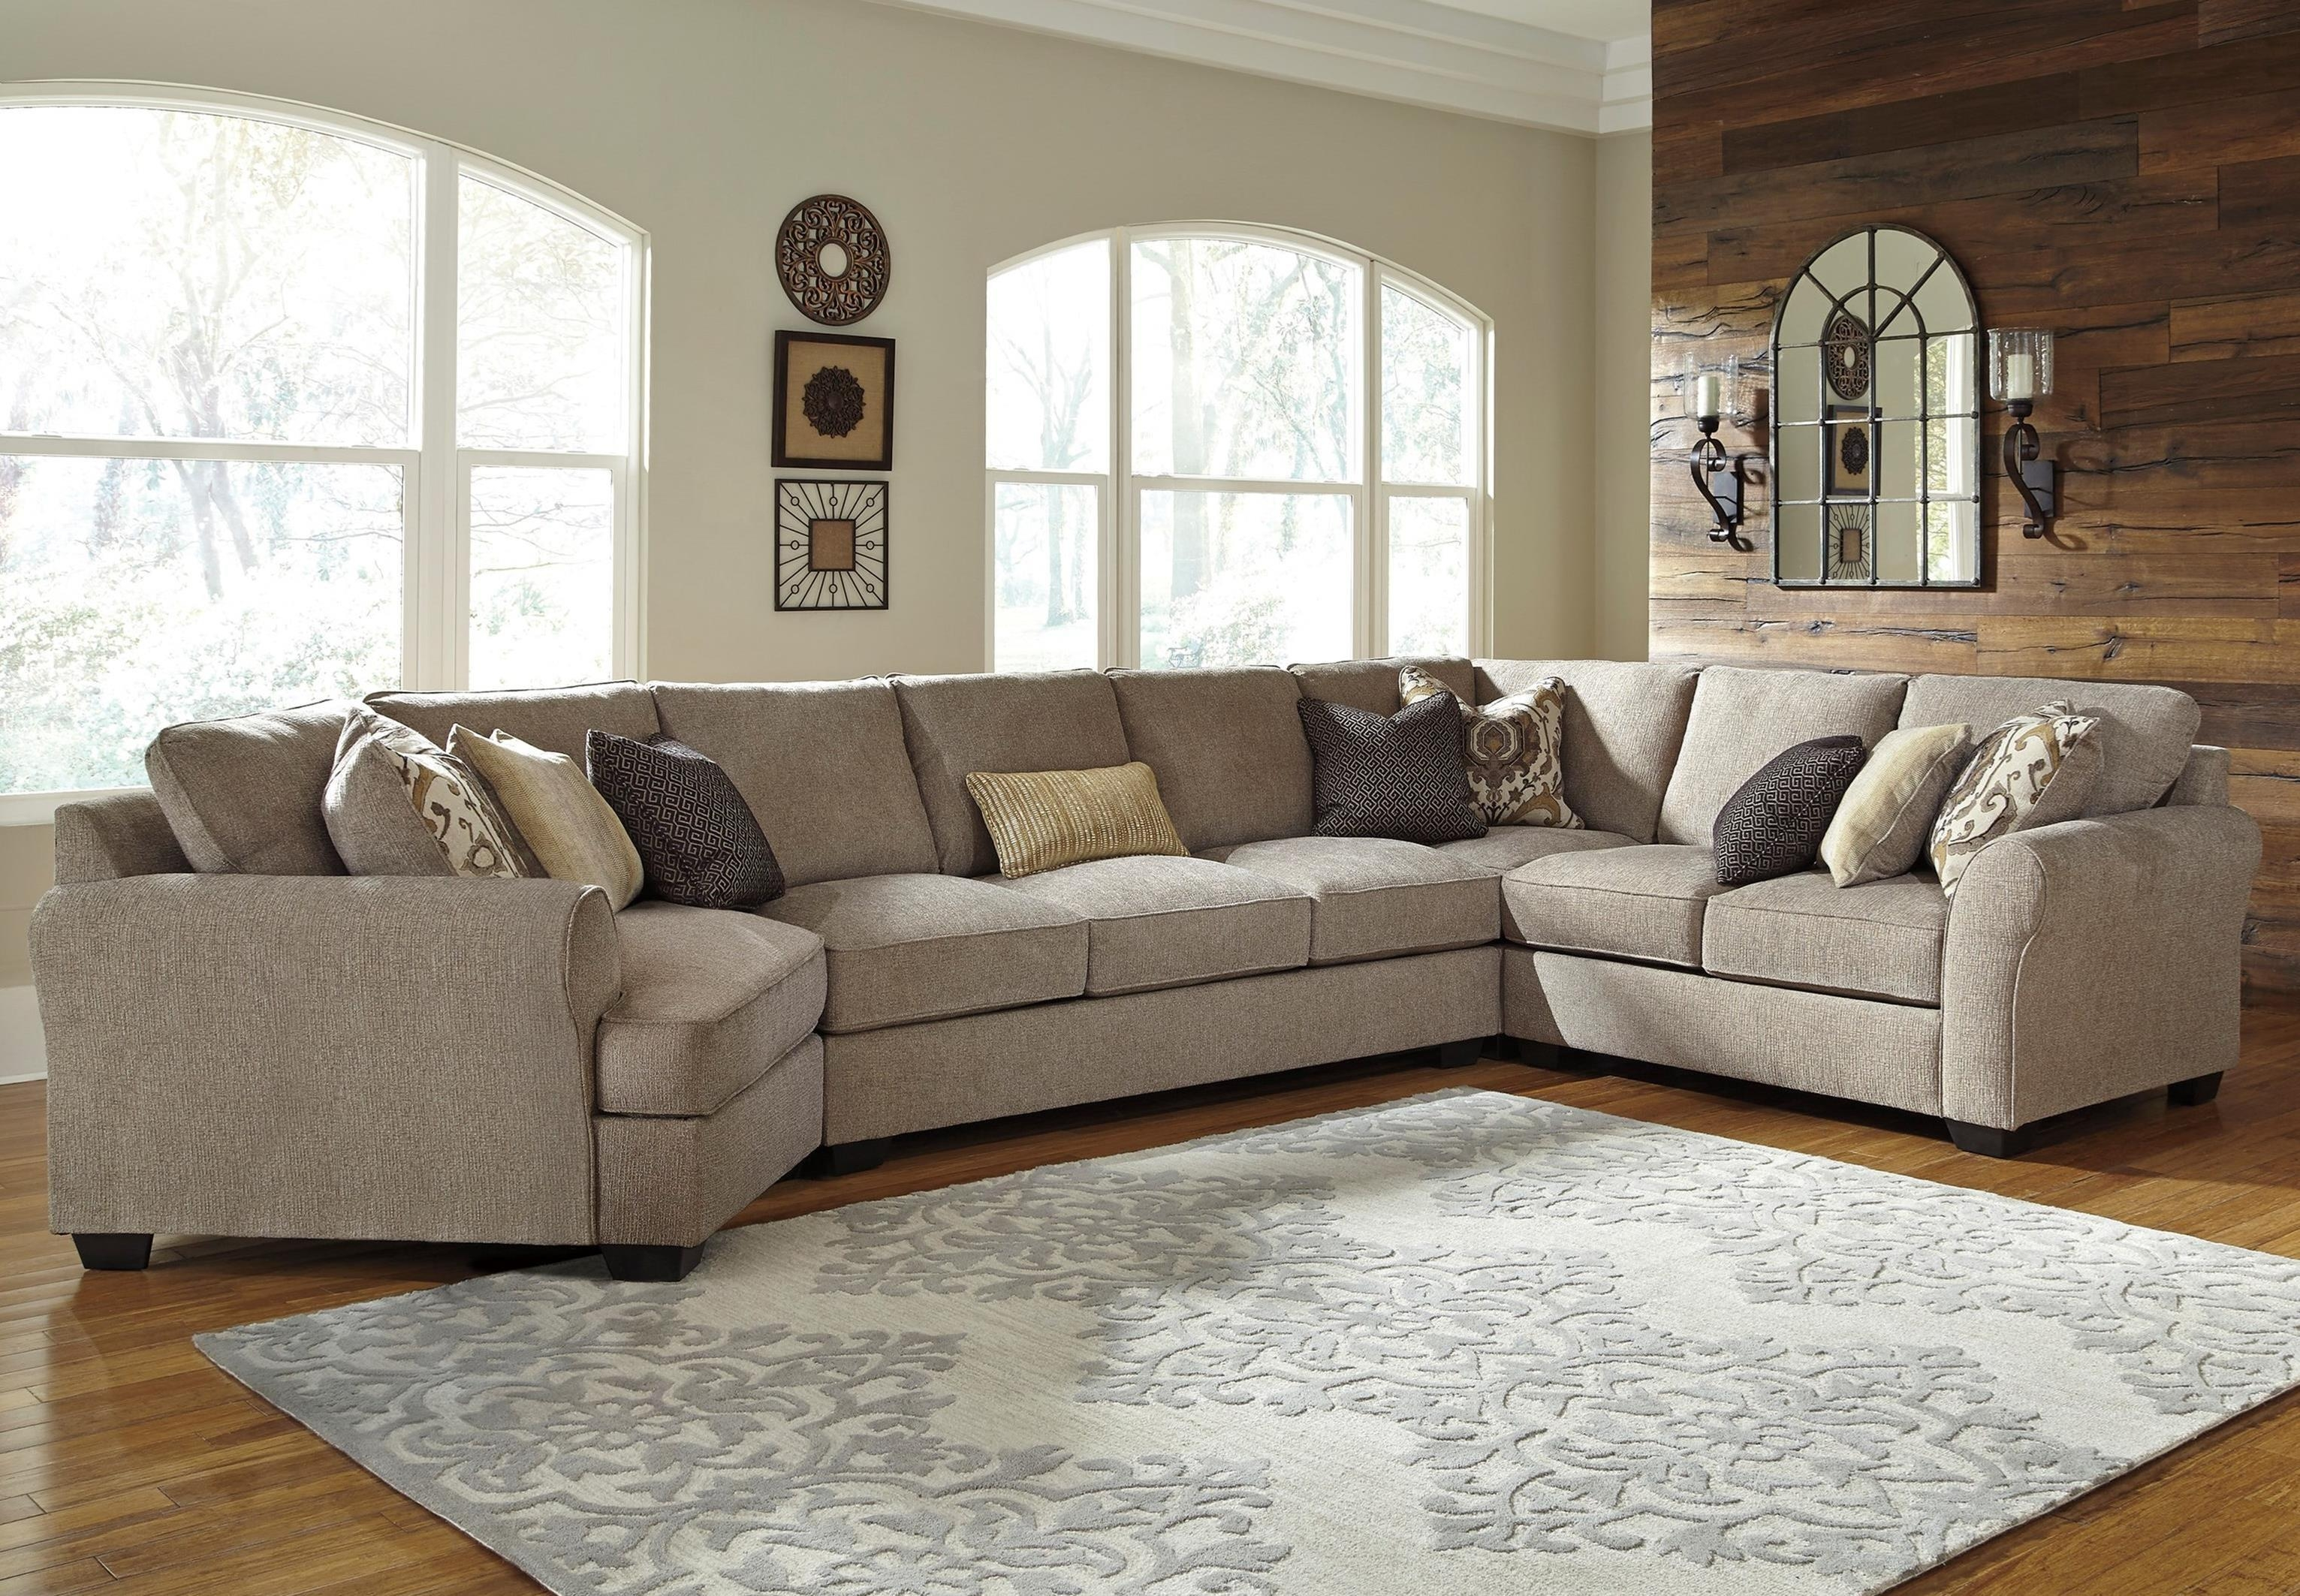 Benchcraft Pantomine 4 Piece Sectional With Left Cuddler & Armless With Armless Sectional Sofa (View 15 of 15)